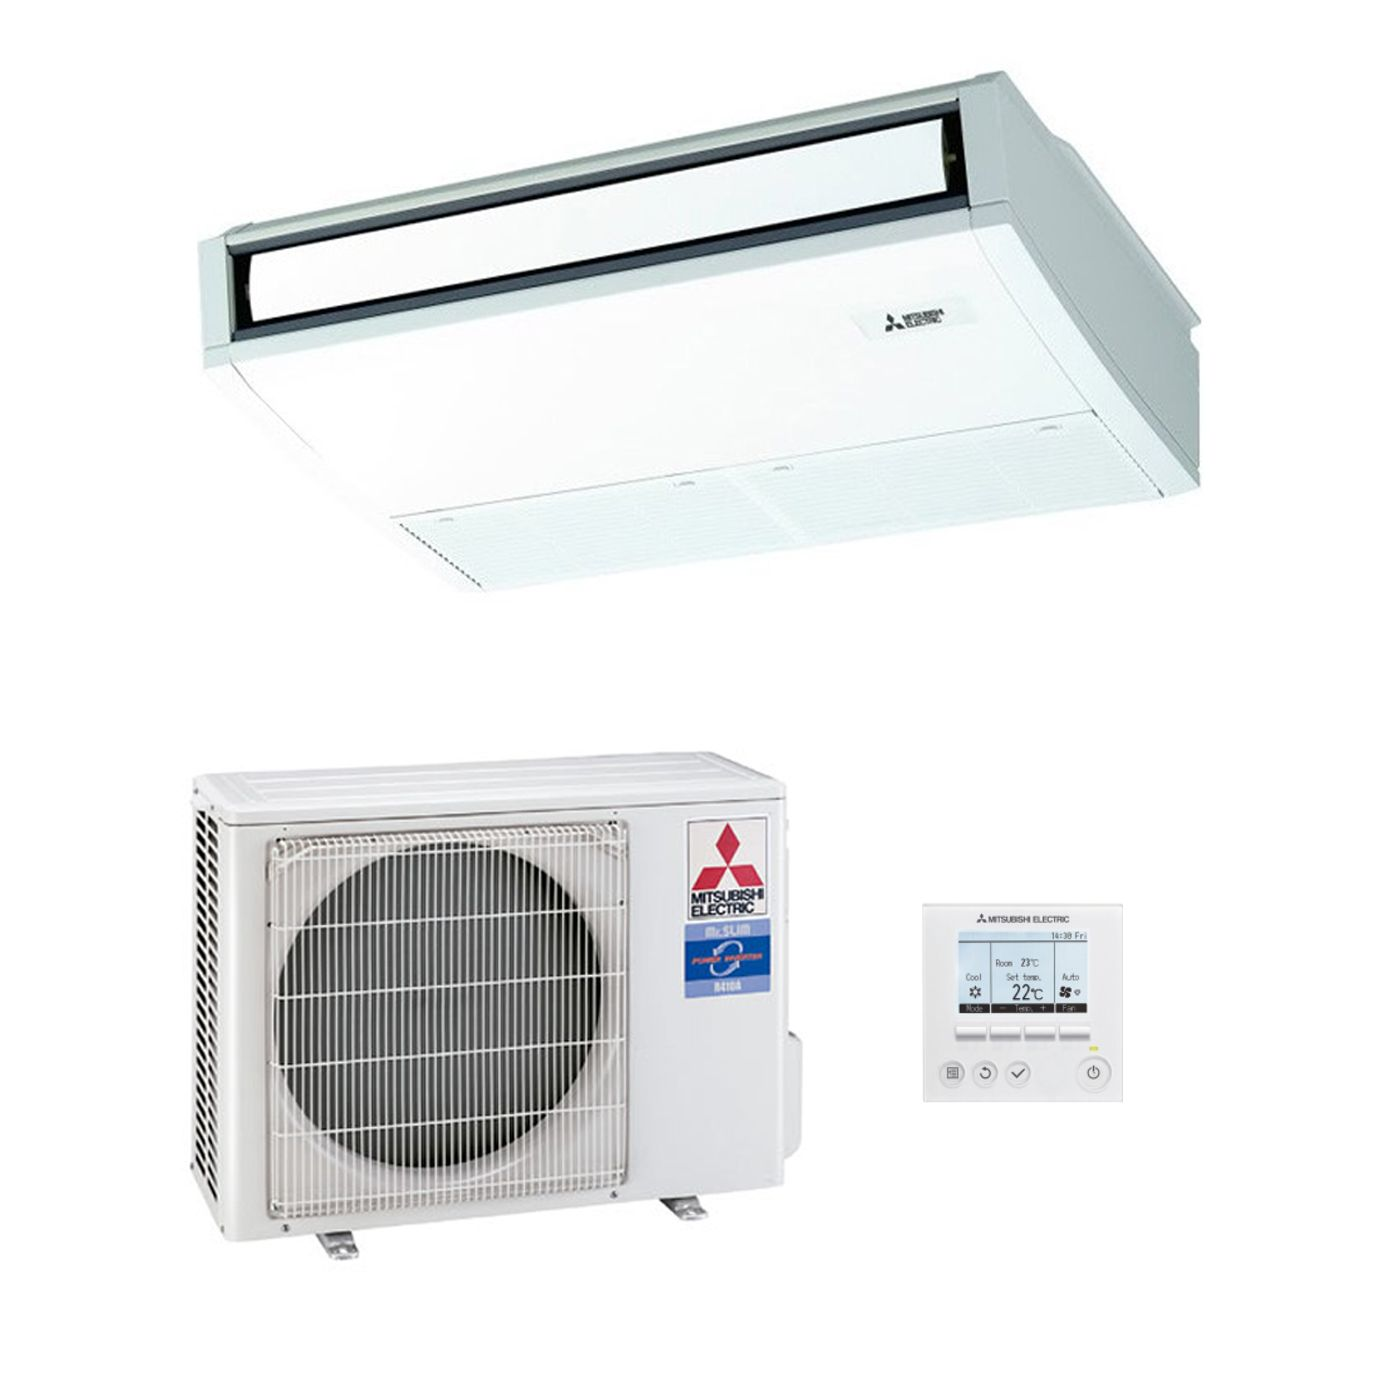 Mitsubishi Electric Air Conditioning Pca Rp50kaq Ceiling Mounted Thermostat Controller Inverter Heat Pump 5kw 17000btu A 240v50hz